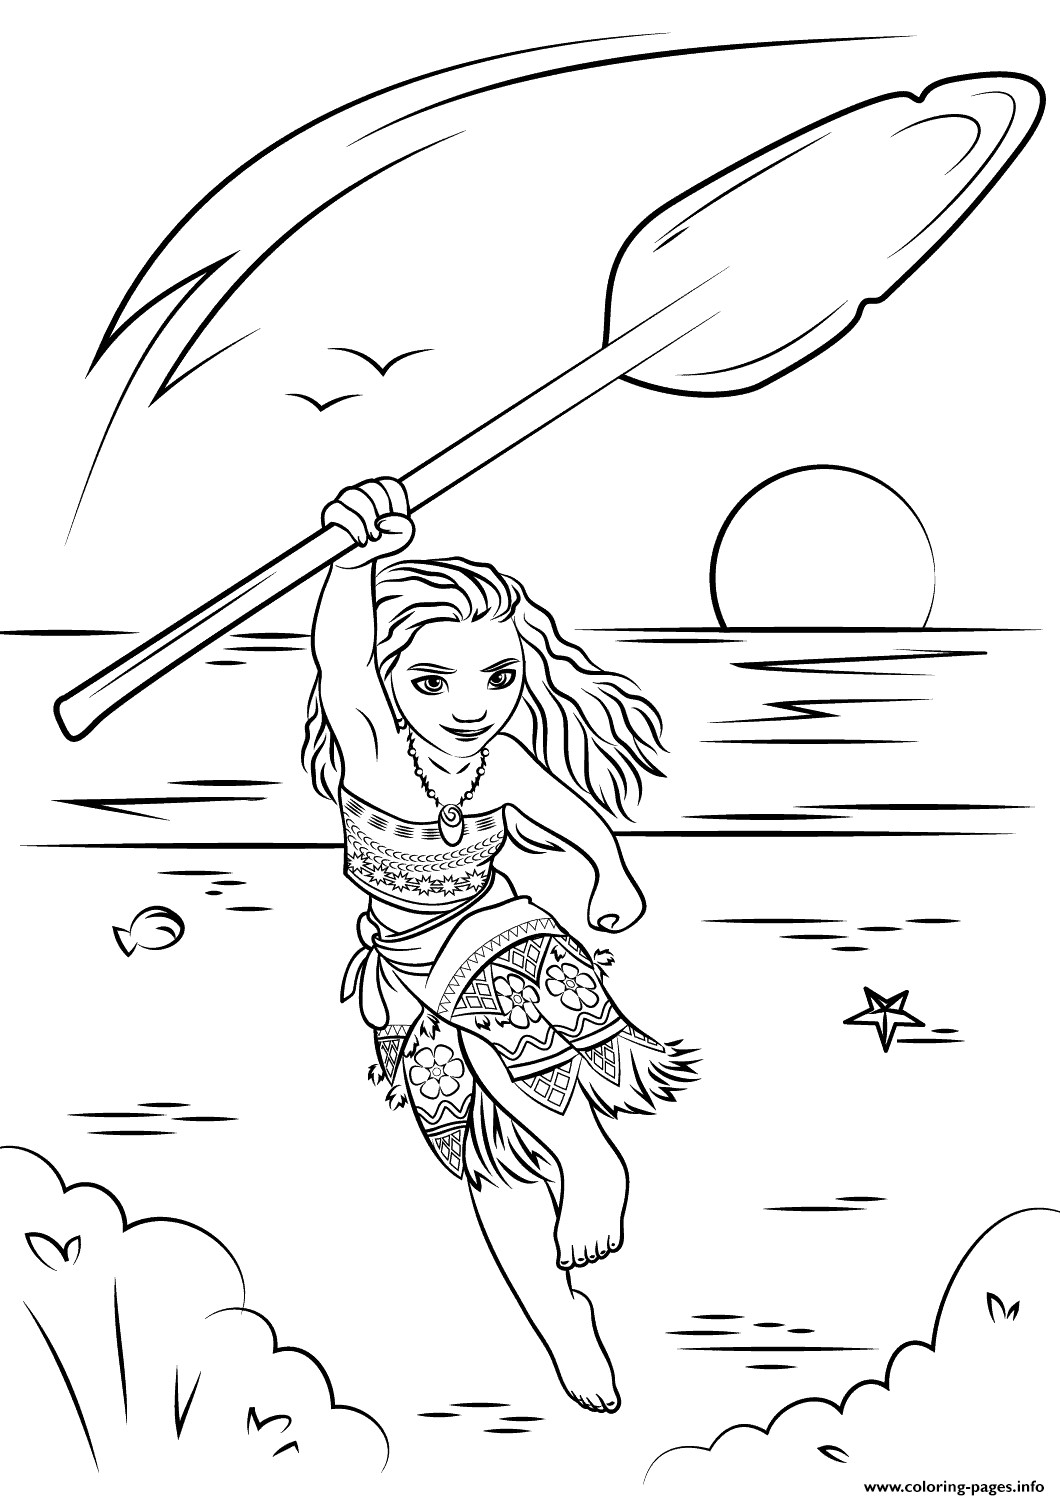 Best ideas about Moana Free Coloring Sheets . Save or Pin Moana Coloring Pages Coloring Home Now.